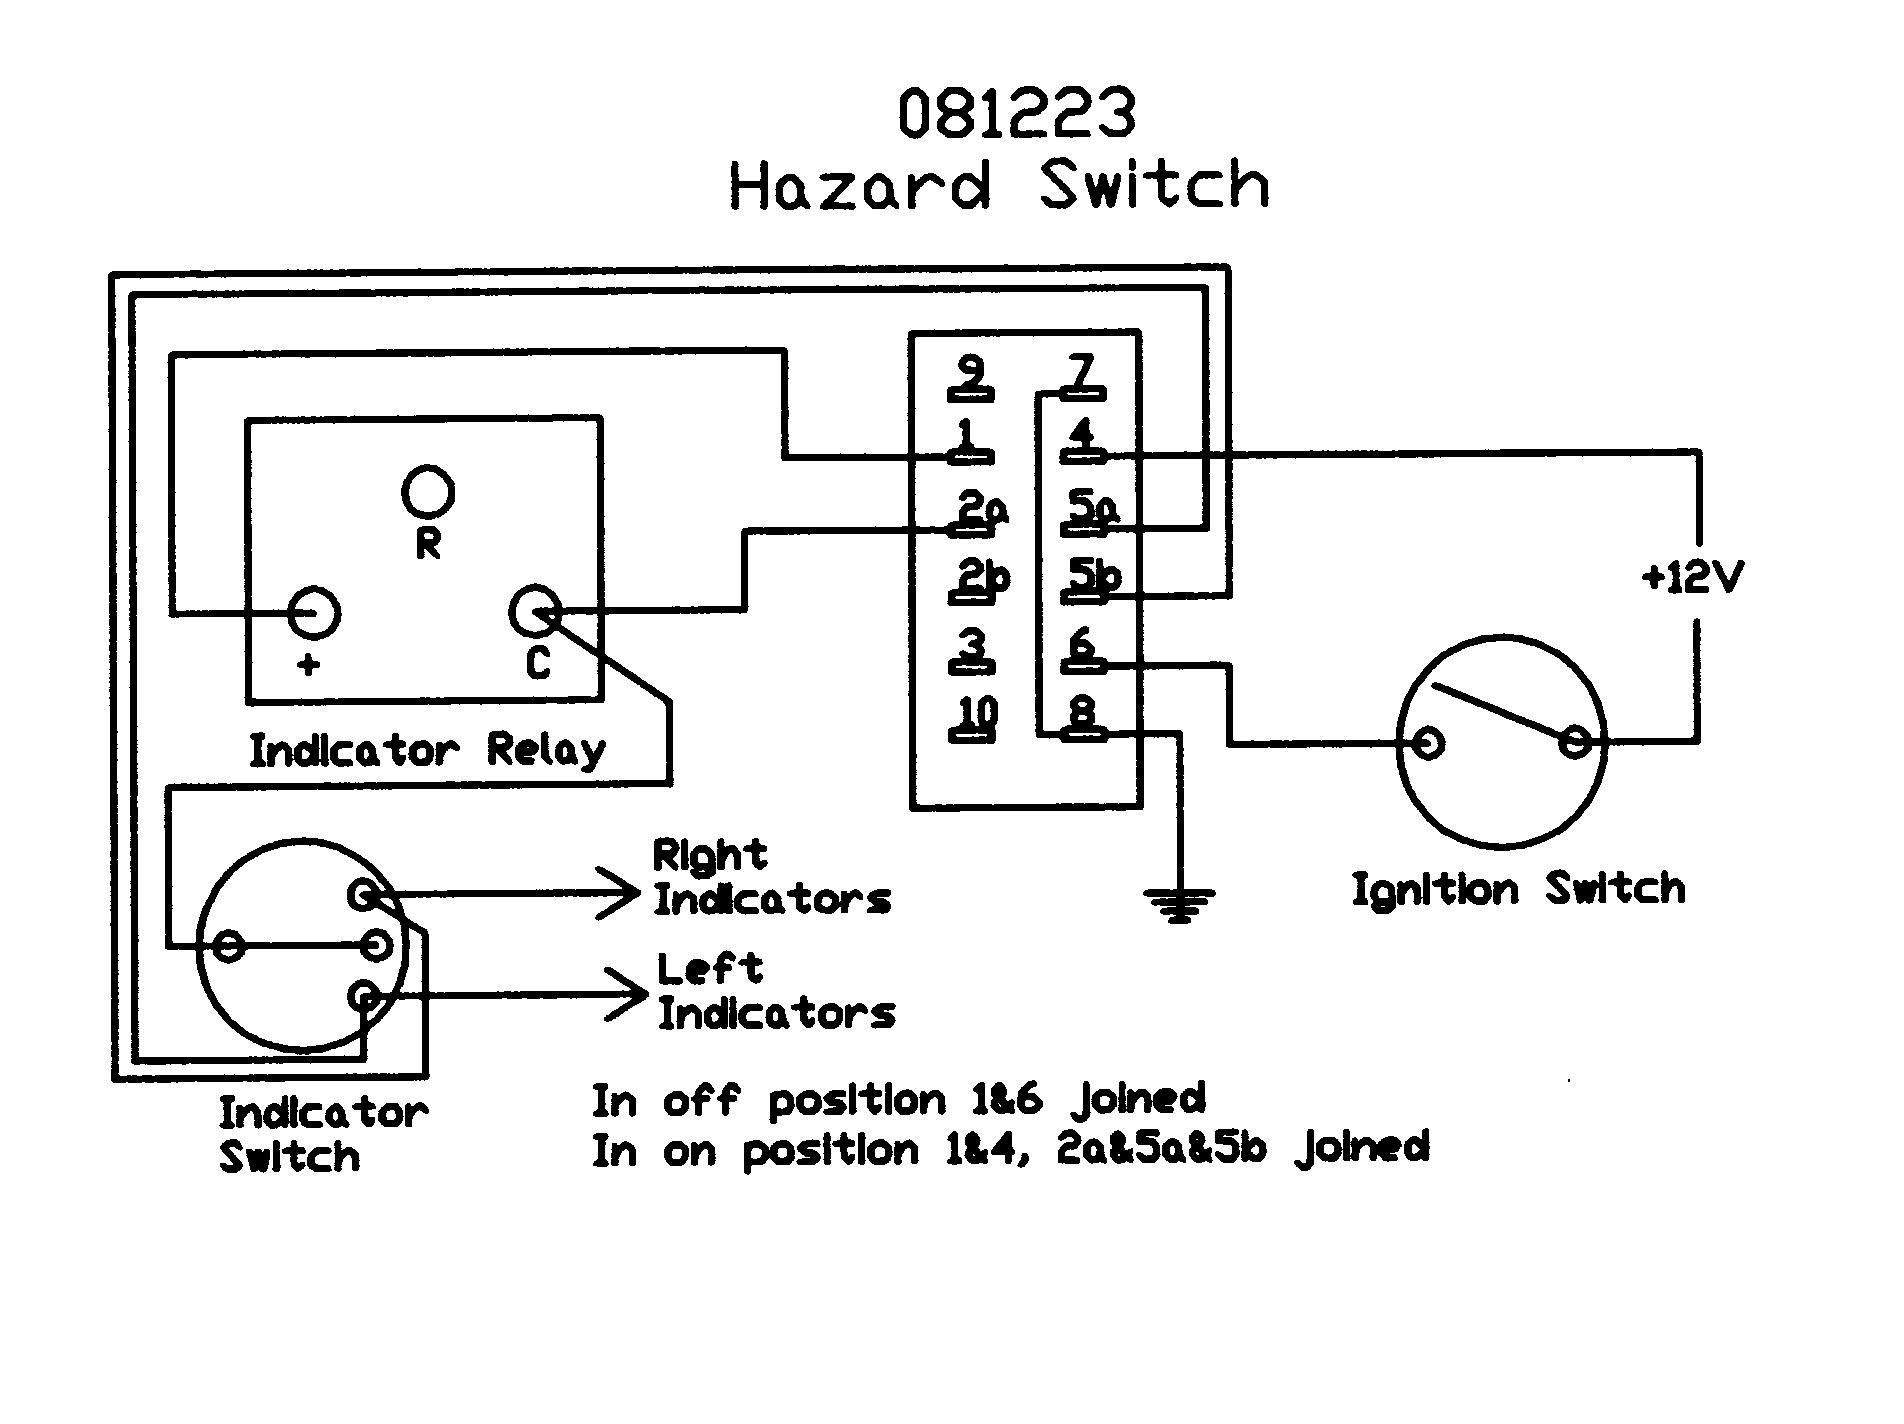 081223_wiring_diagram_1 rocker hazard switch lucas indicator switch wiring diagram at pacquiaovsvargaslive.co